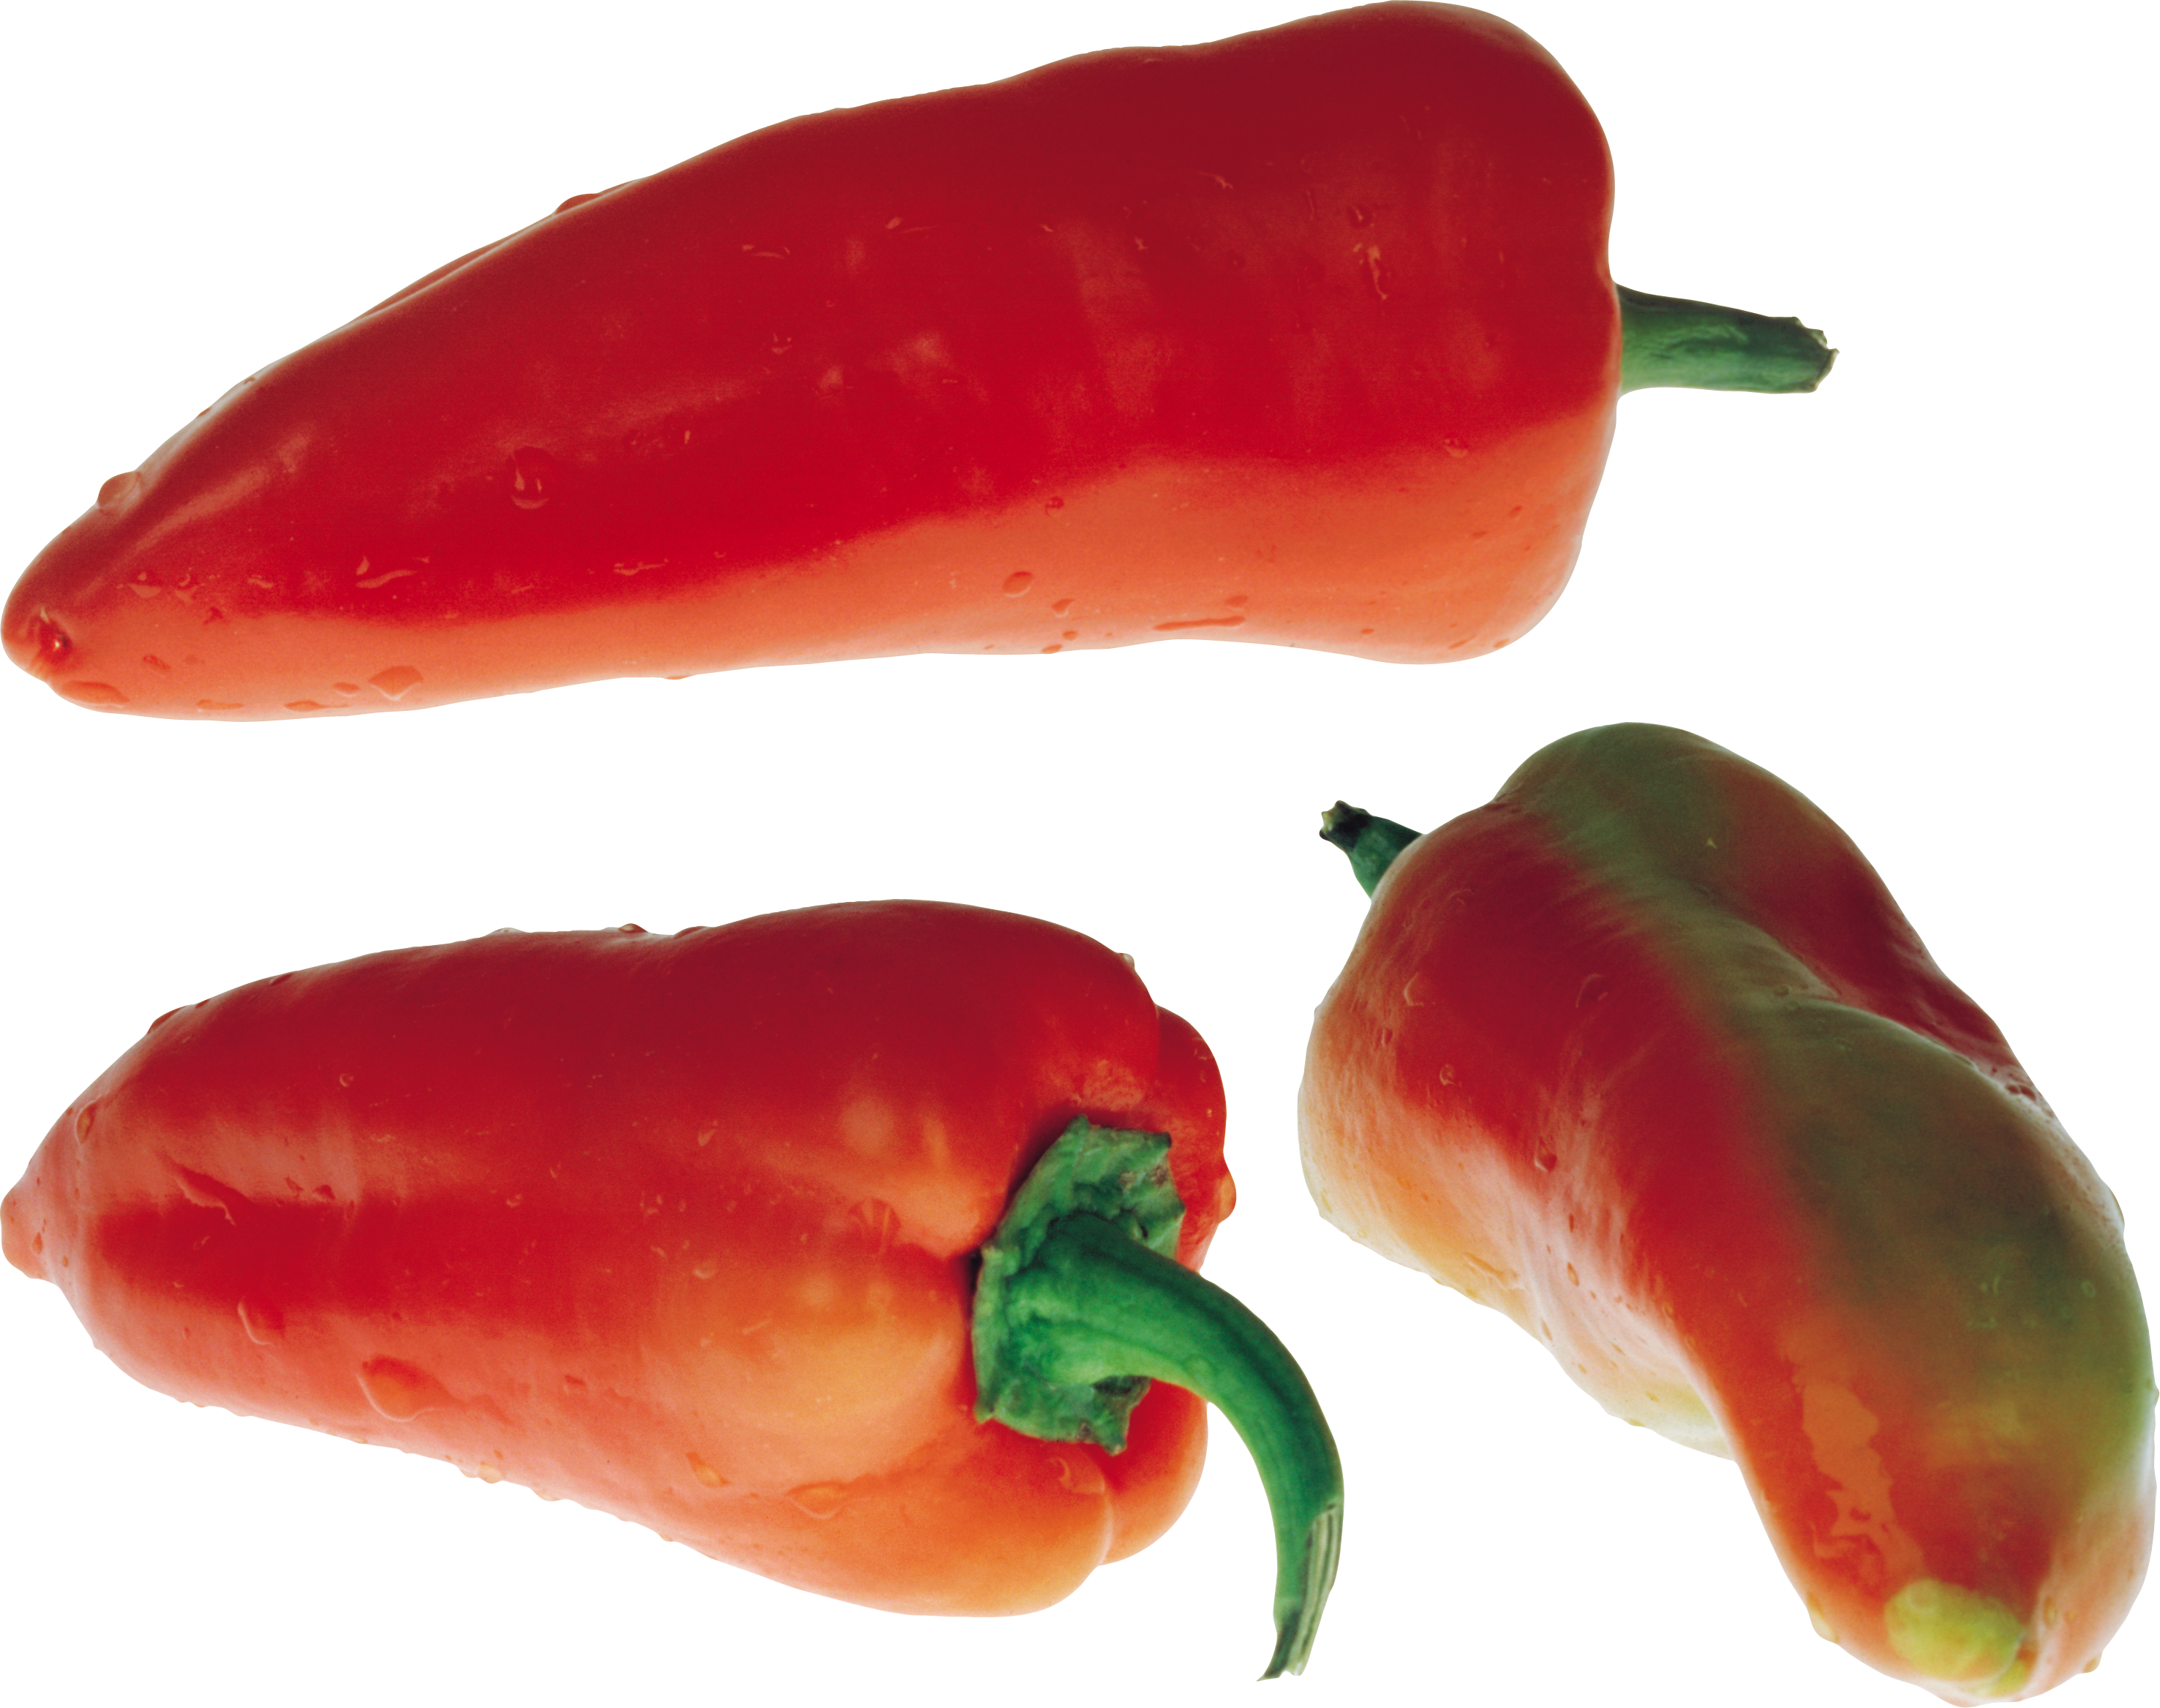 Pepper png image free. Jalapeno clipart red jalapeno